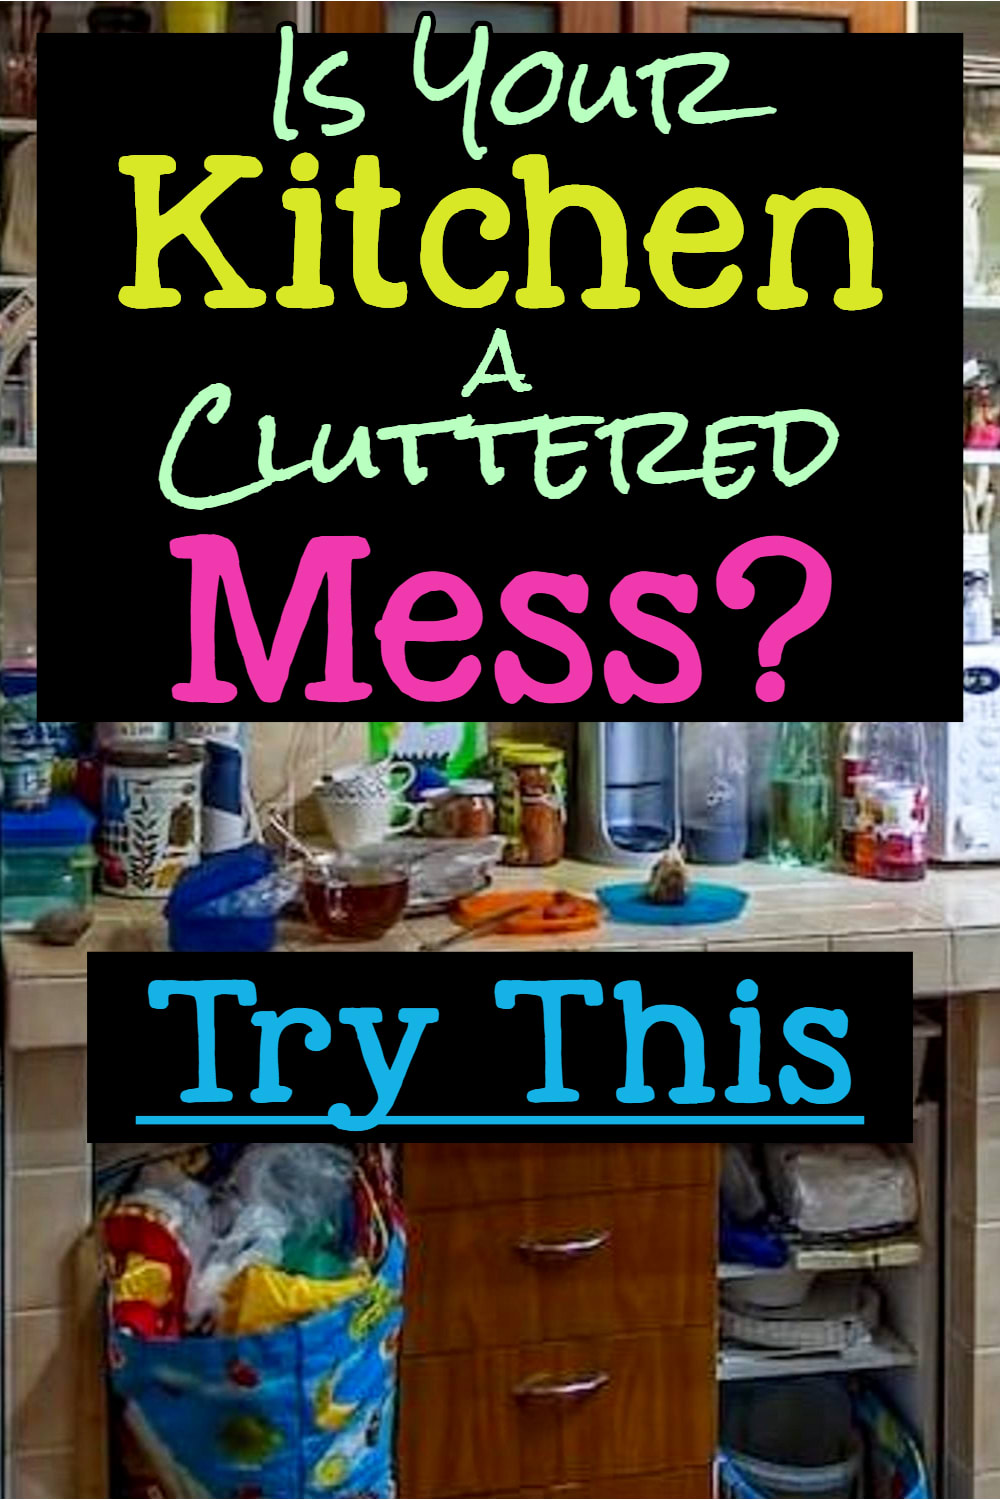 Cluttered house? Messy cluttered kitchen?  Try these kitchen decluttering ideas, cleaning hacks and cleaning checklists to declutter your kitchen FAST!  Don't know where to START organizing your cluttered kitchen?  Try these ideas for organizing clutter in your kitchen for clutter free countertops.  Uncluttering your kitchen without feeling overwhelmed has never been so easy with these home organization hacks for your kitchen from professional organizers.